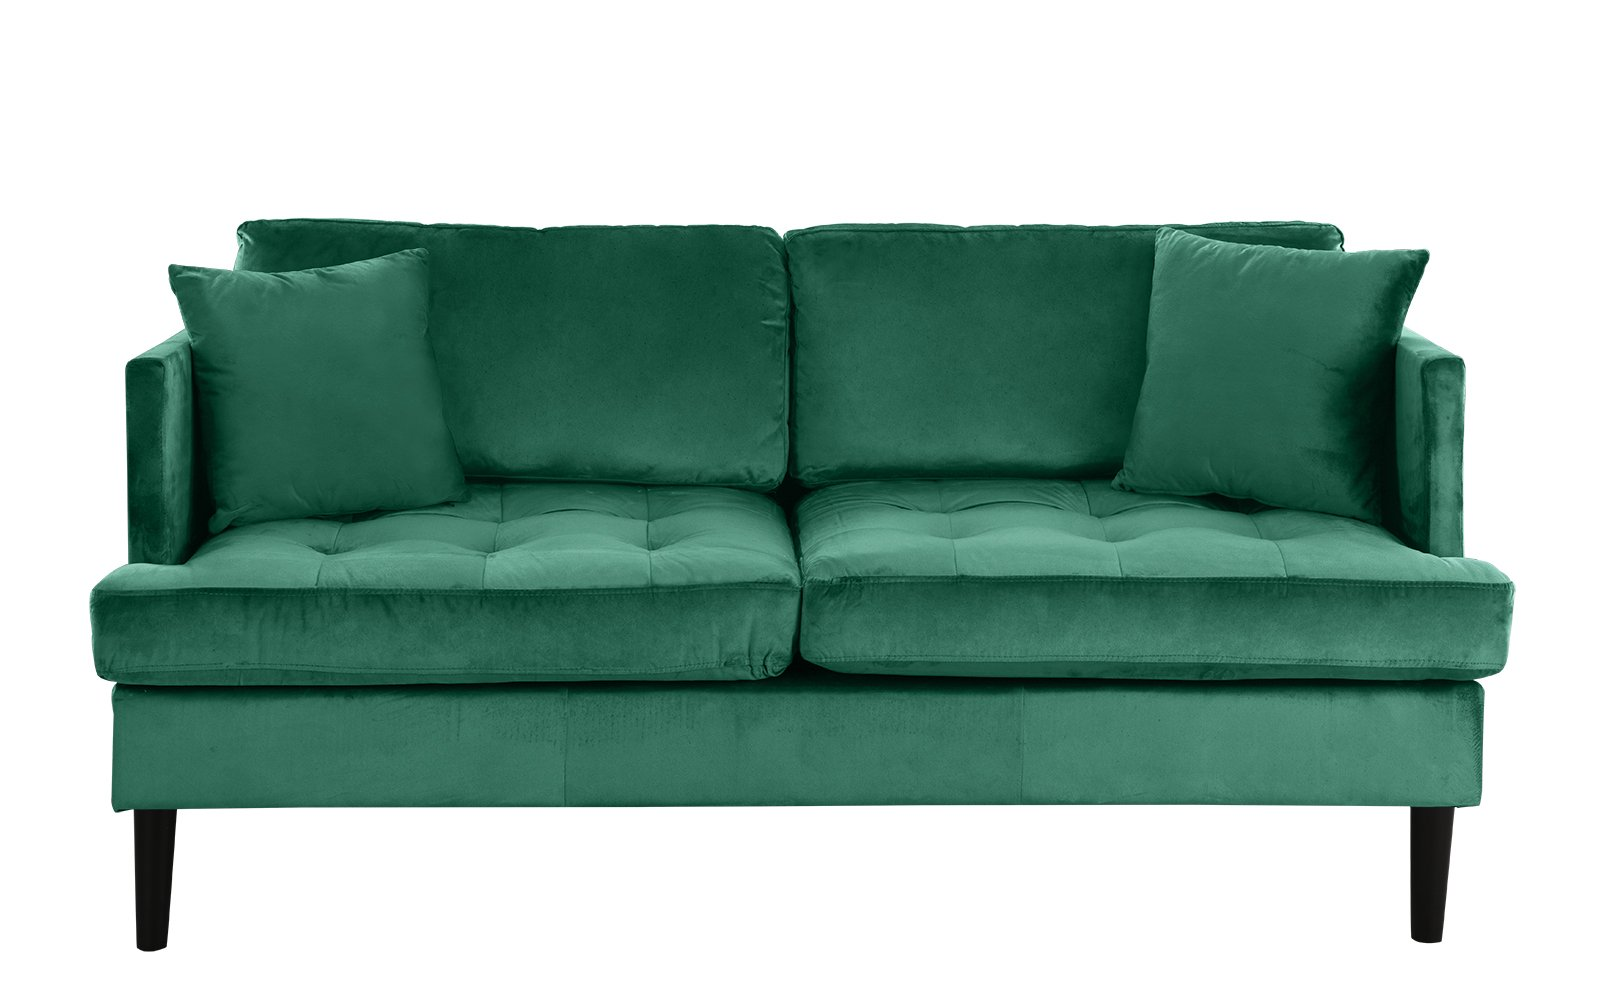 greta old hollywood velvet tufted loveseat - $229.99  i like this one, although it's getting close to a grandma kind of vibe i think it's pretty cool and affordable.